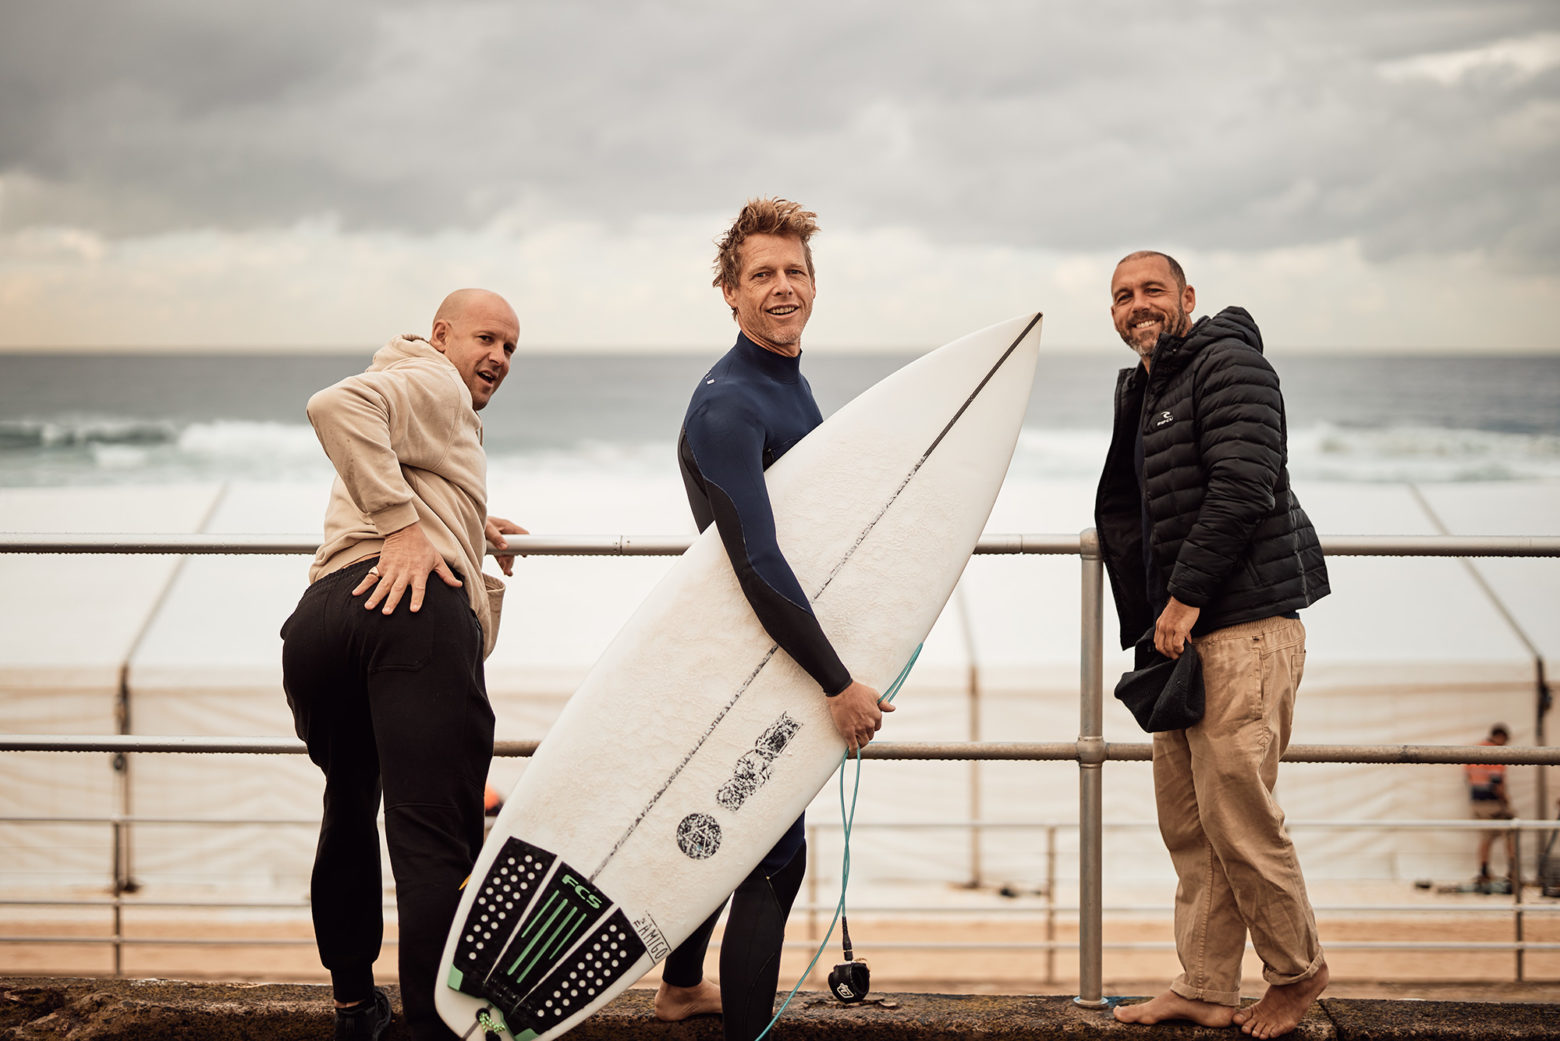 I've had to surf with these mugs for years. Gez, Tim and Bubba